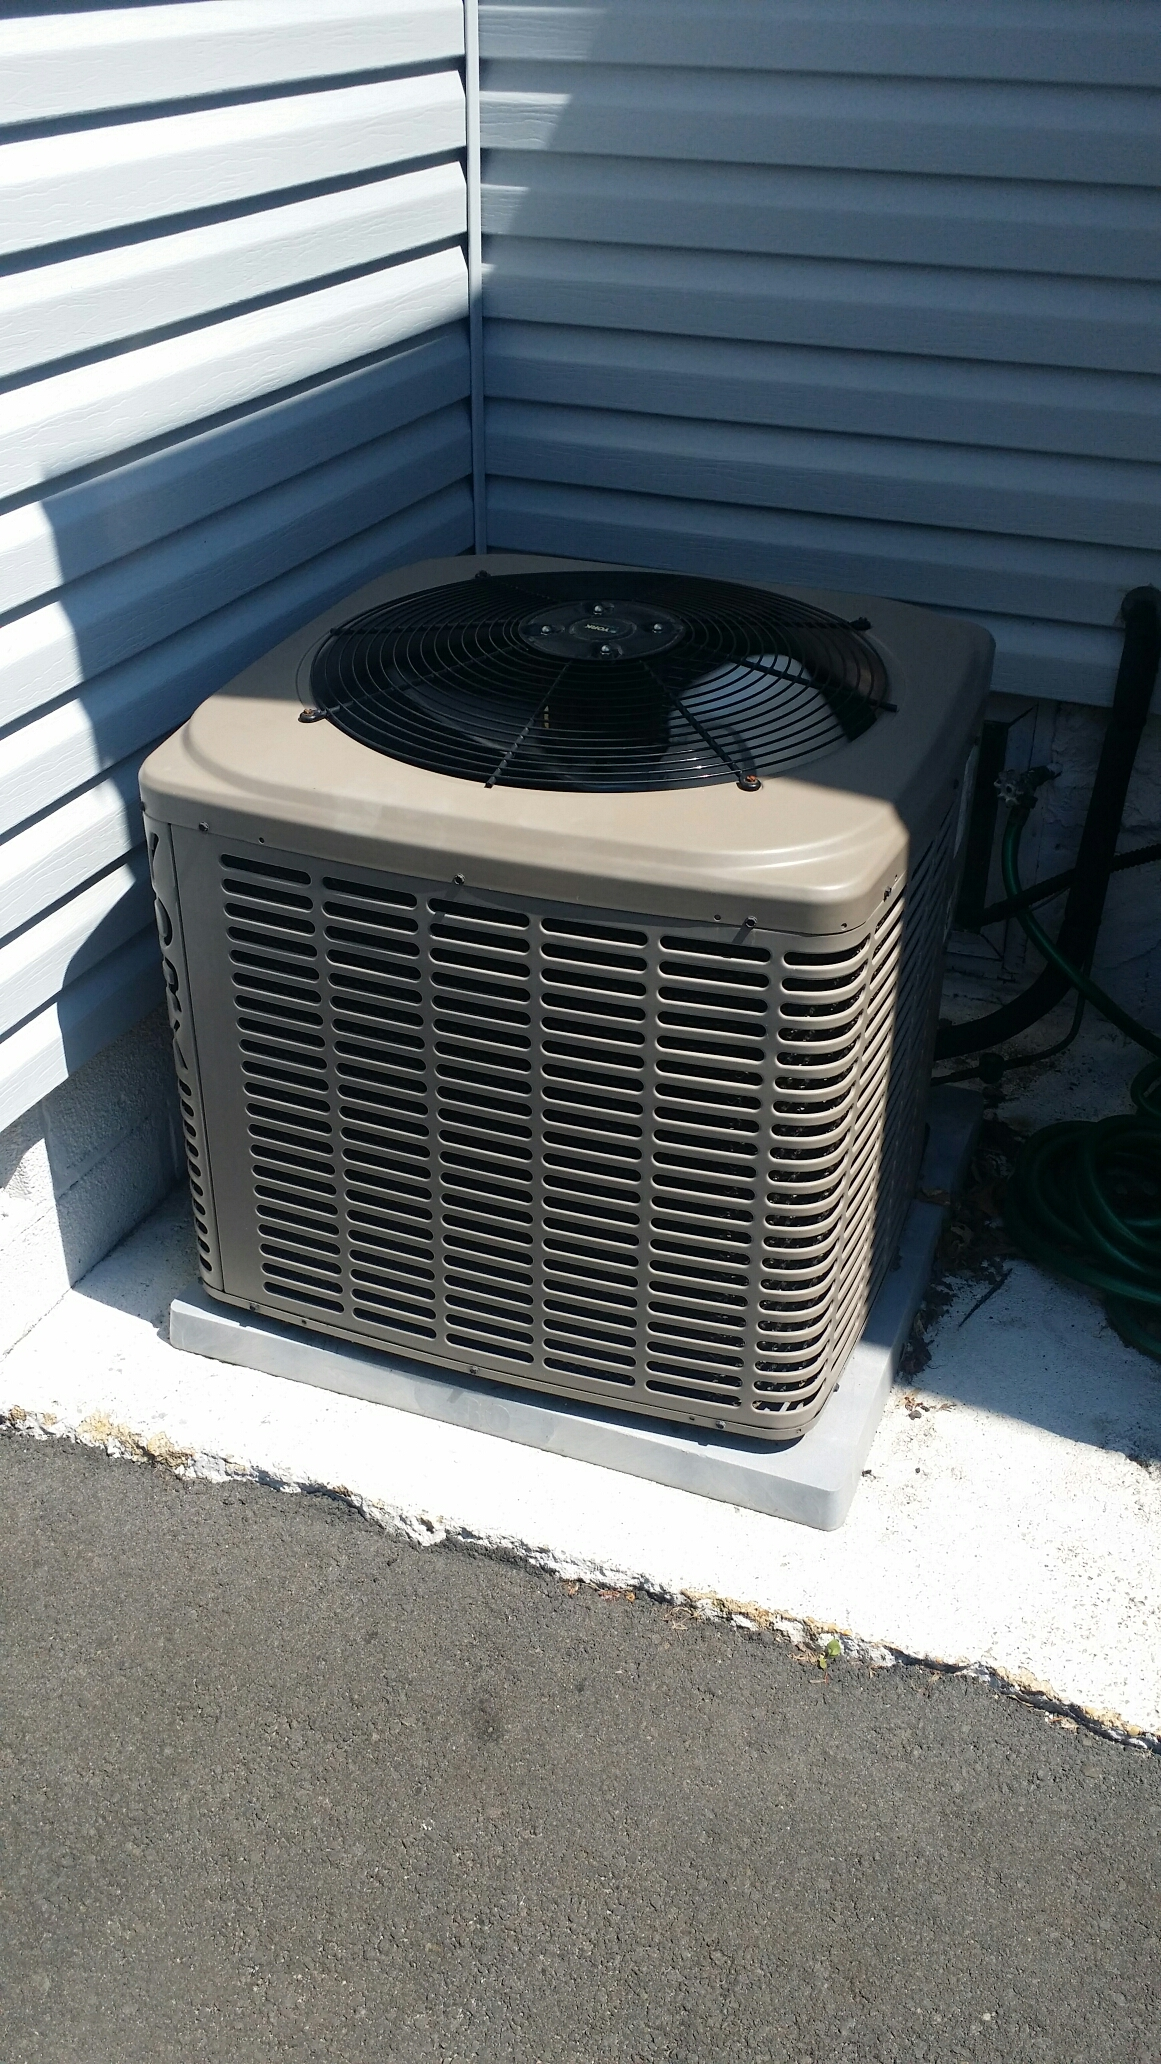 Brick, NJ - Air conditioner service call. York air conditioner not cooling. Leak search and recharge ac unit